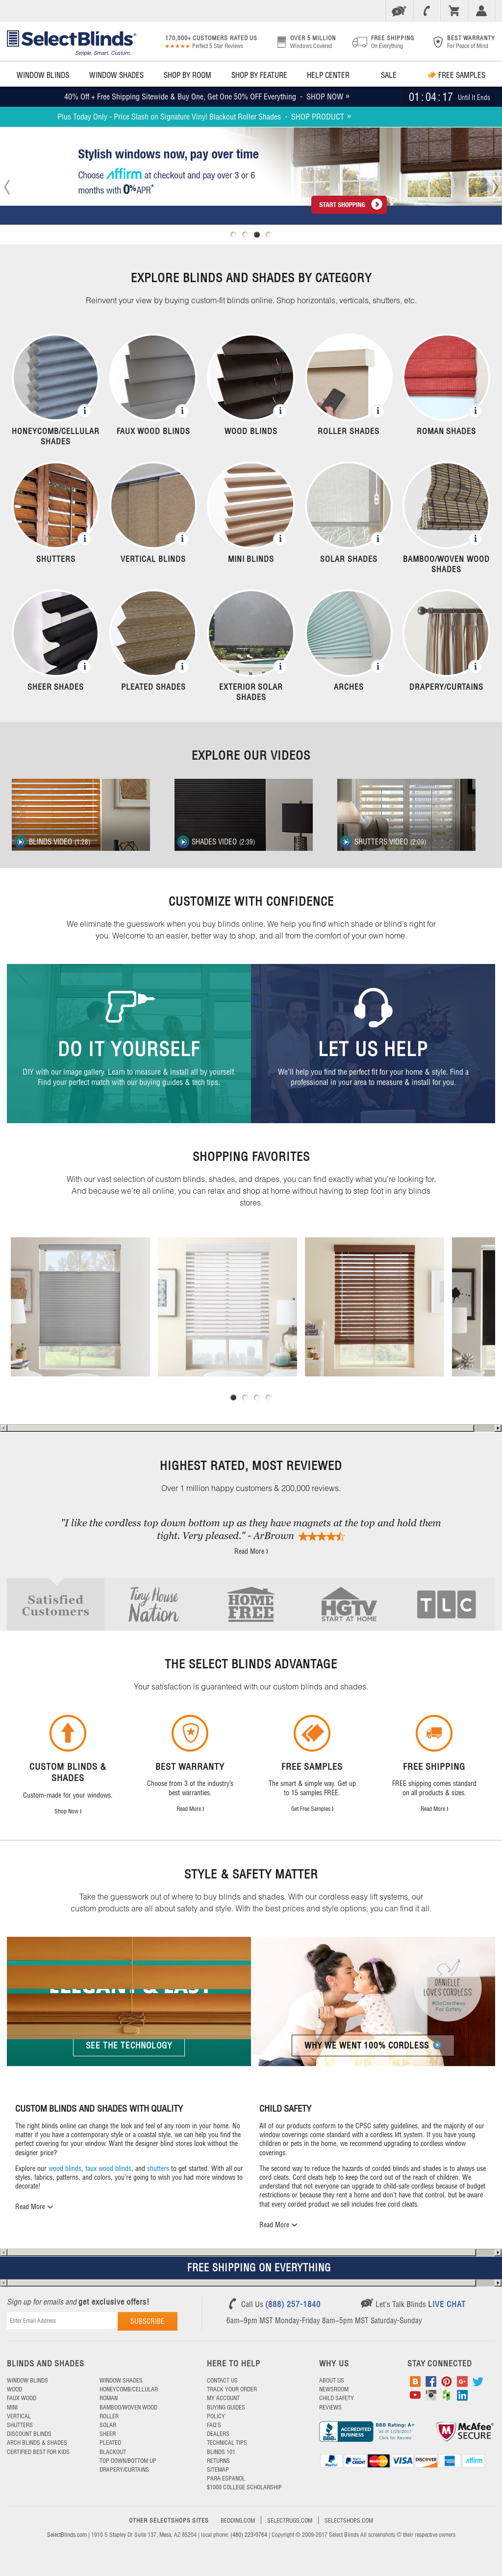 com followers select blinds road gift to giveaway blog card